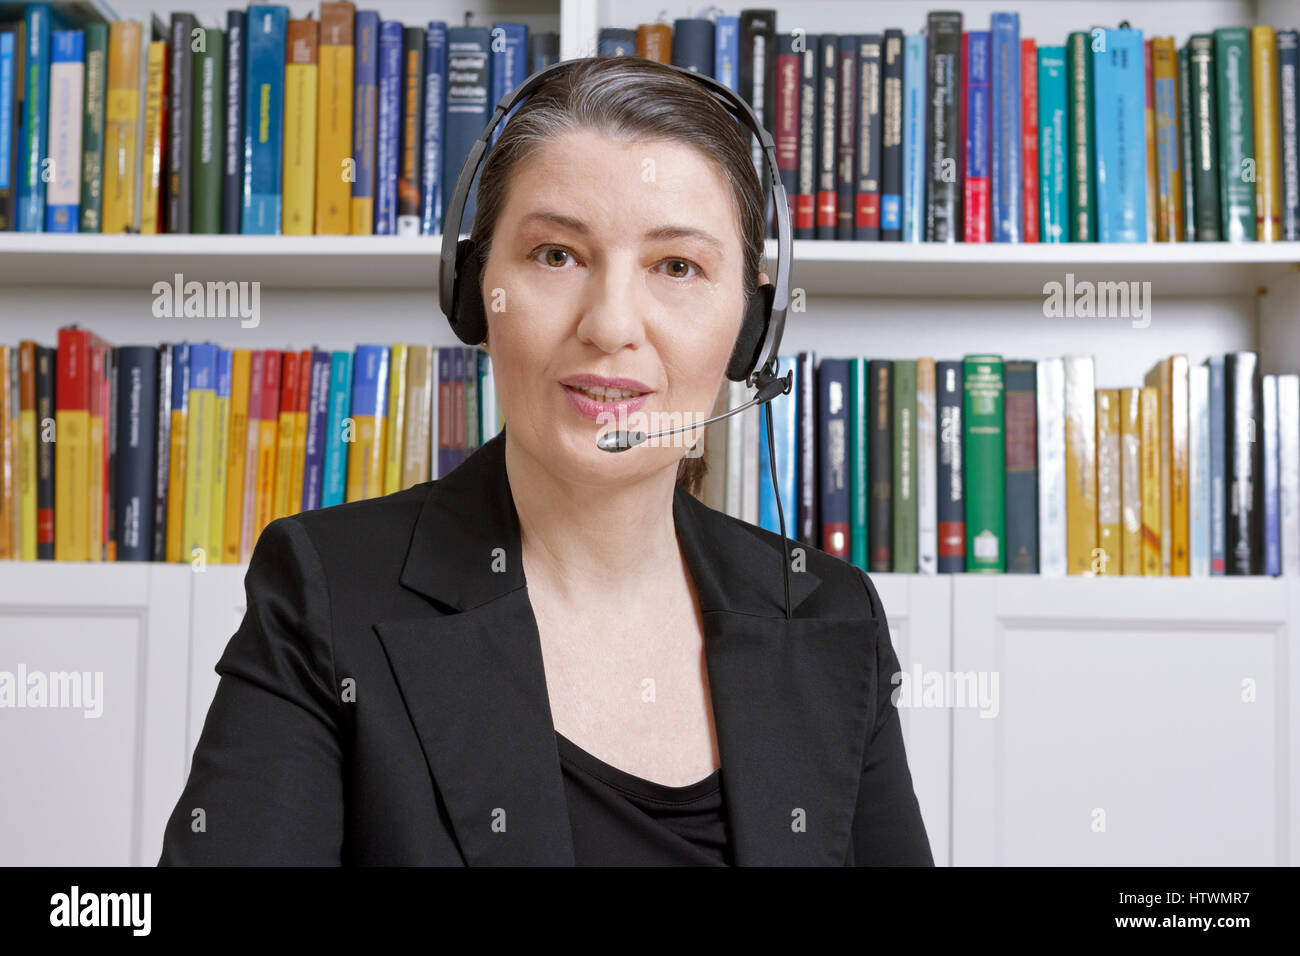 Friendly middle aged woman with headphones and black blazer in an office with lots of books, talking via the internet, - Stock Image